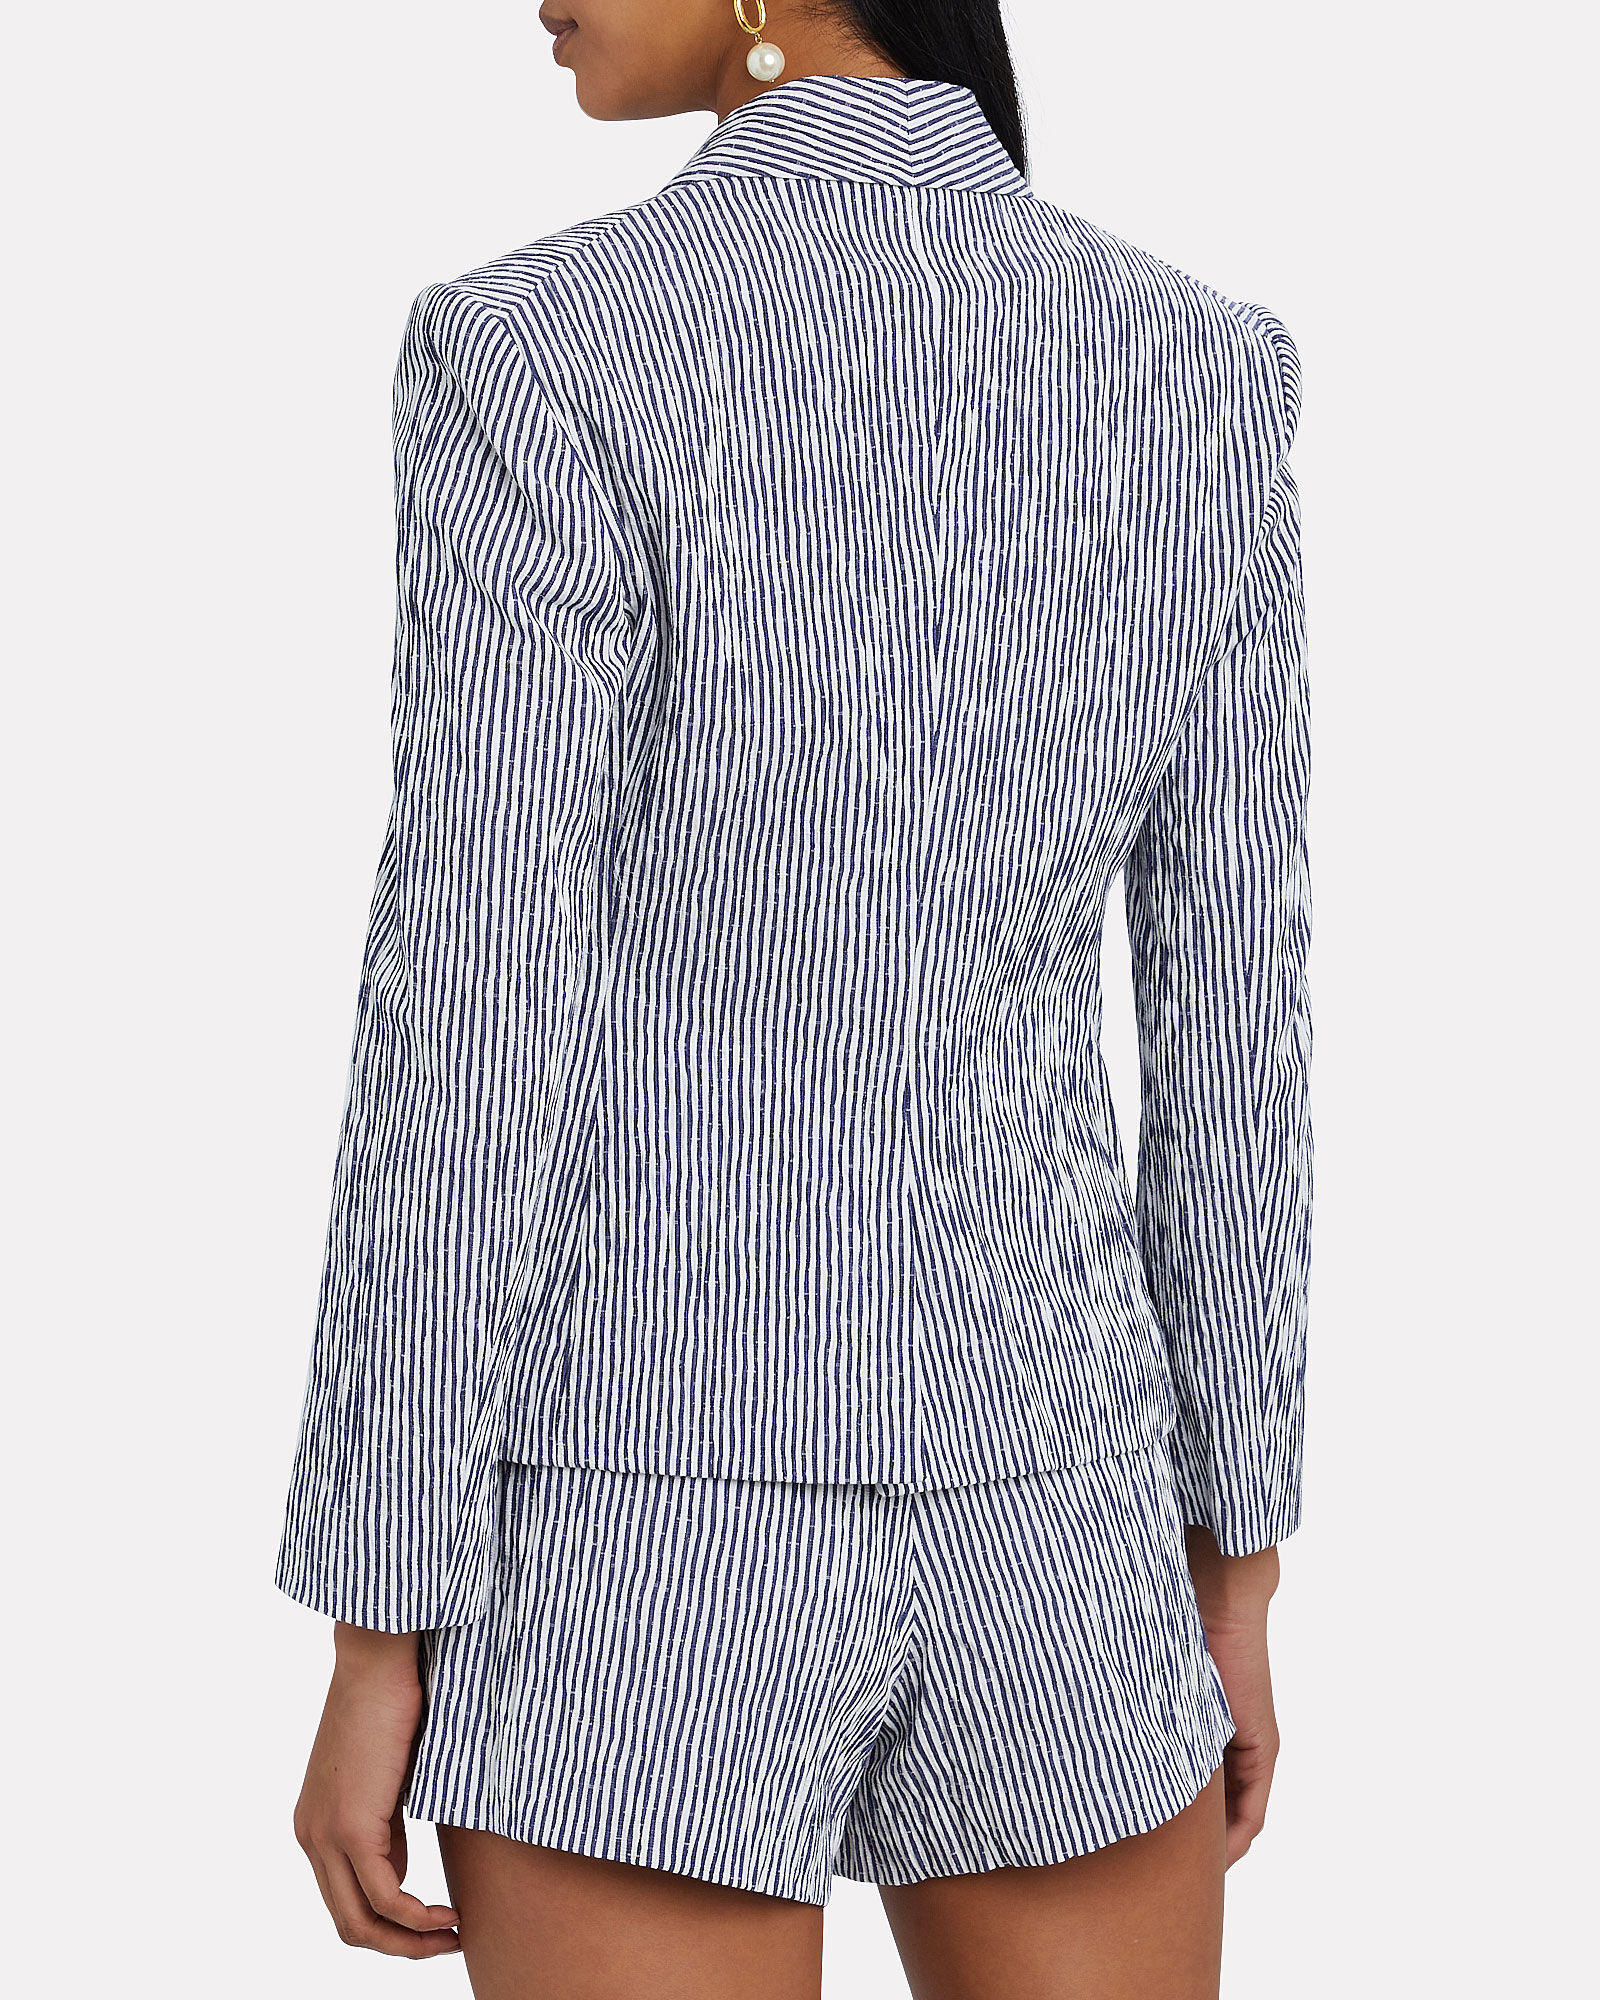 Myla Striped Double-Breasted Blazer, NAVY/WHITE, hi-res